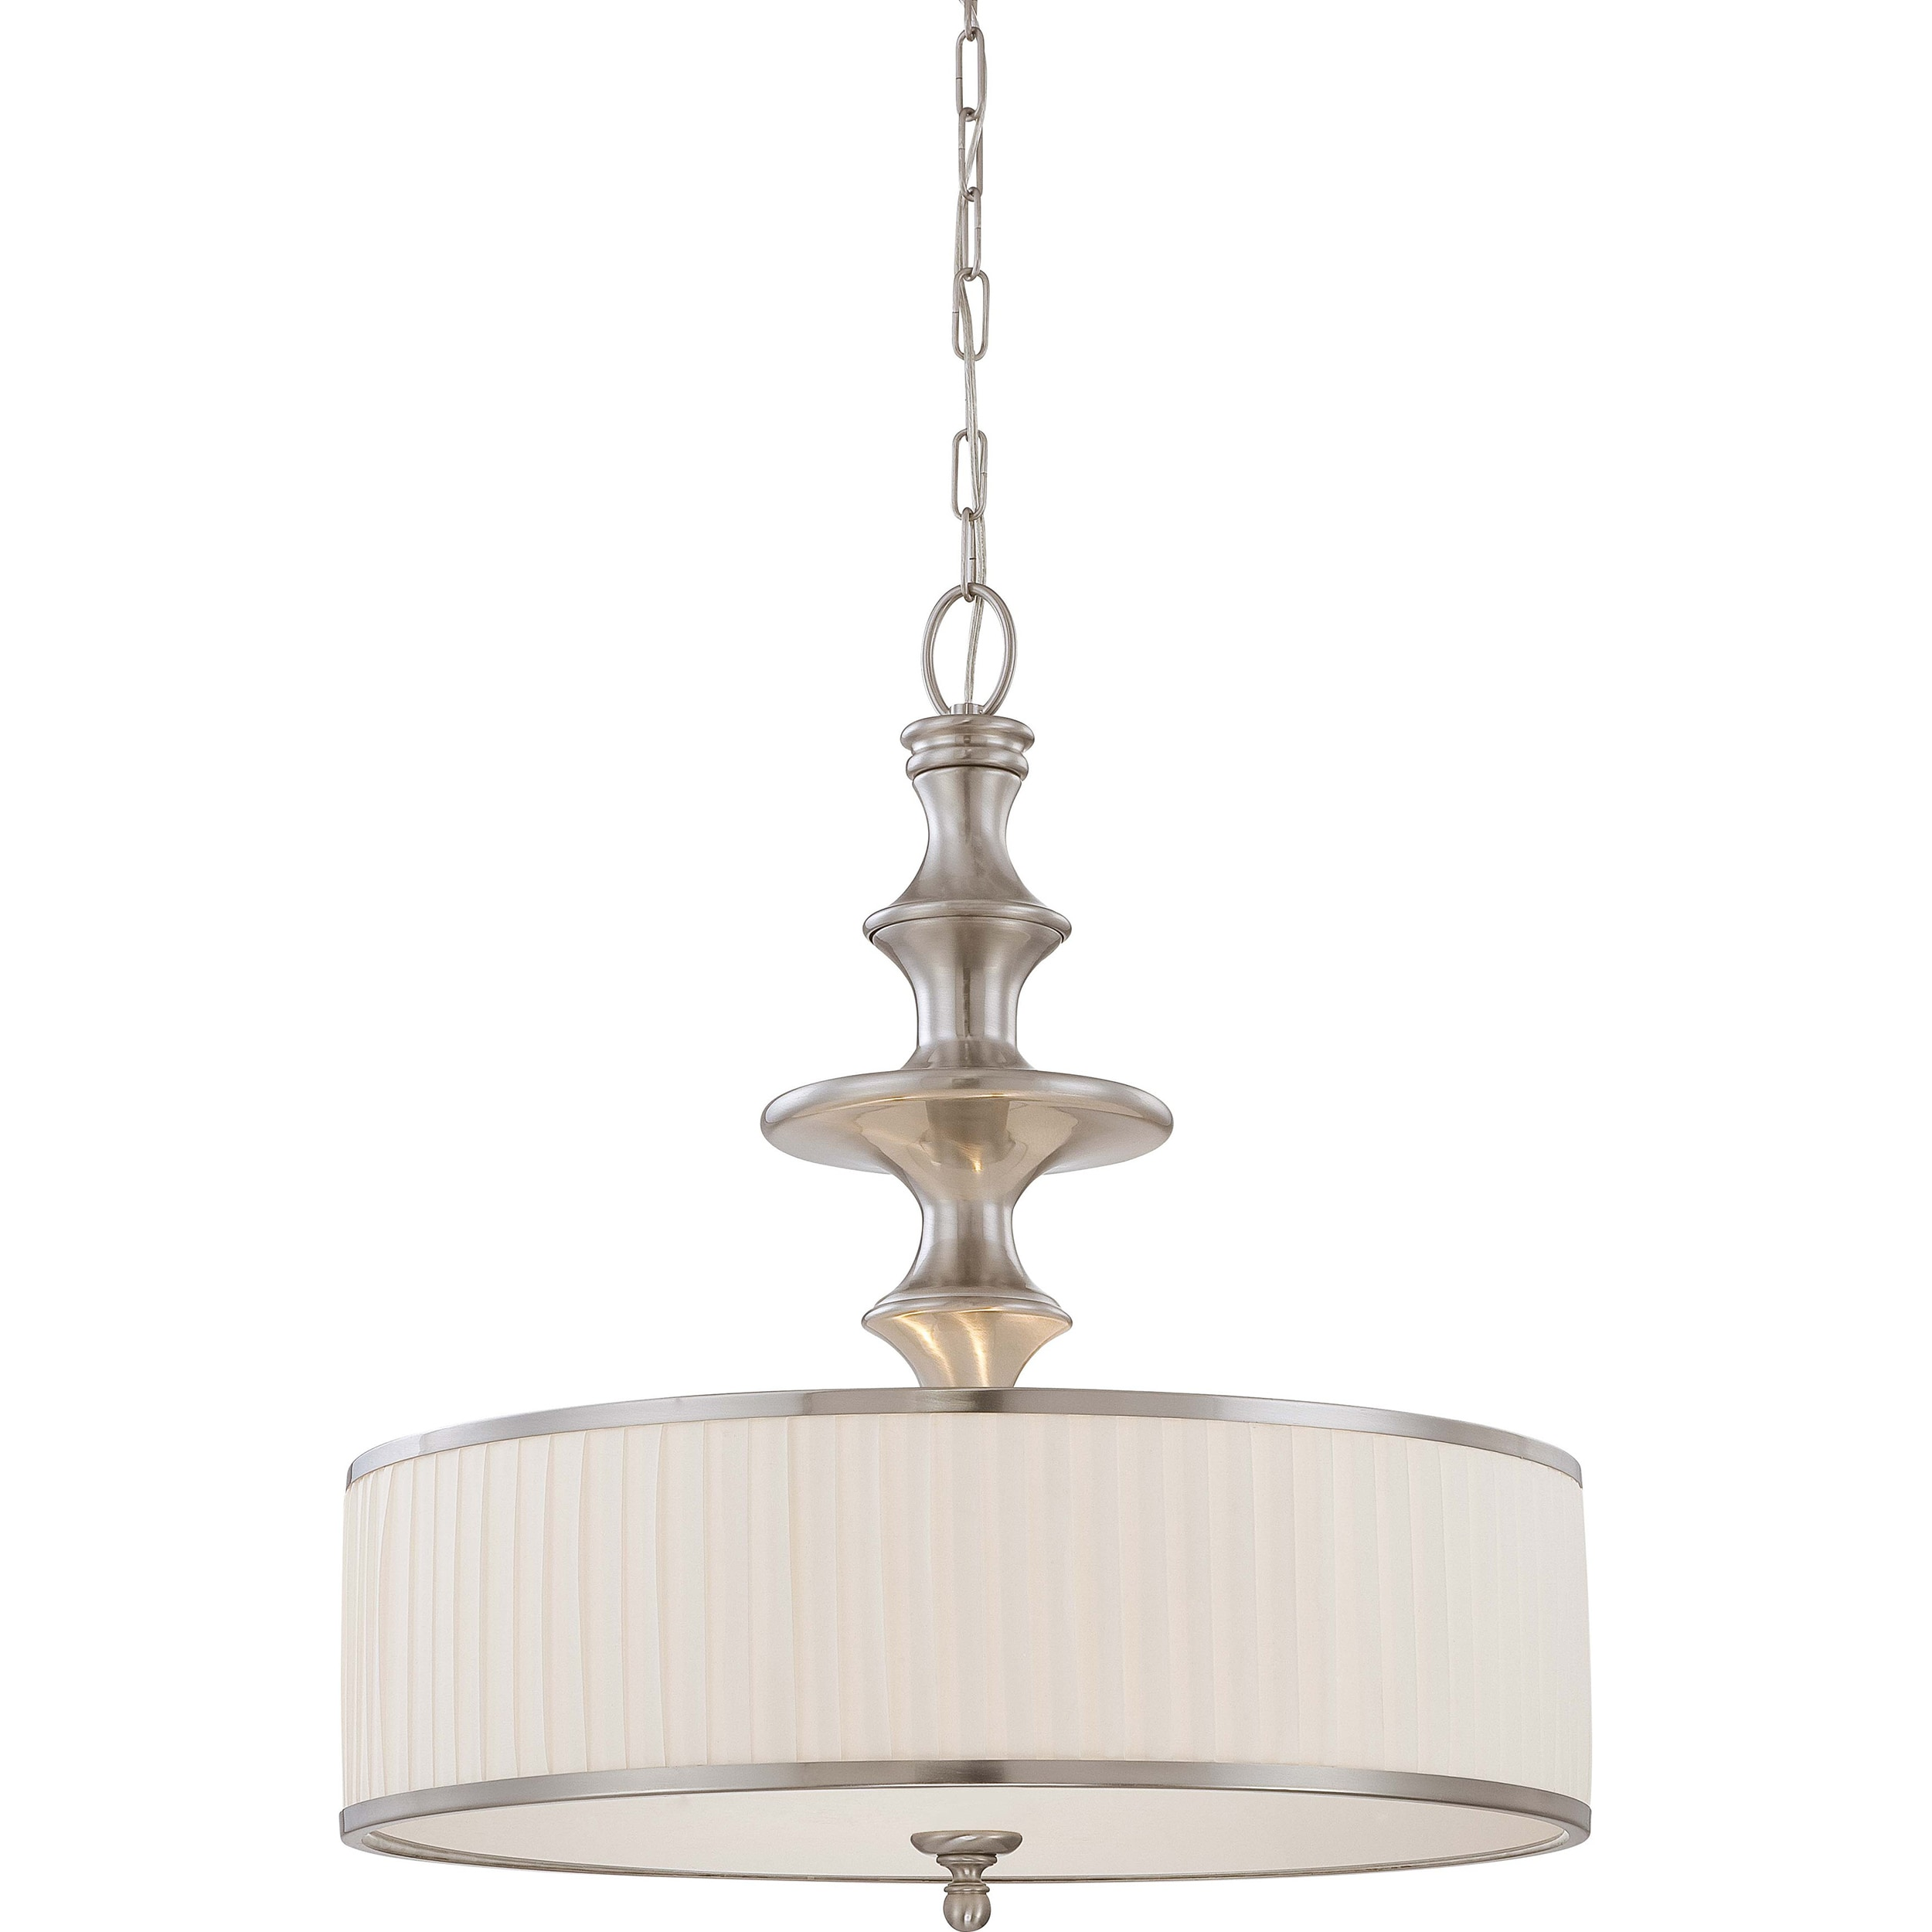 Candice nickel and flat pleated white shade 3 light pendant free candice nickel and flat pleated white shade 3 light pendant arubaitofo Choice Image